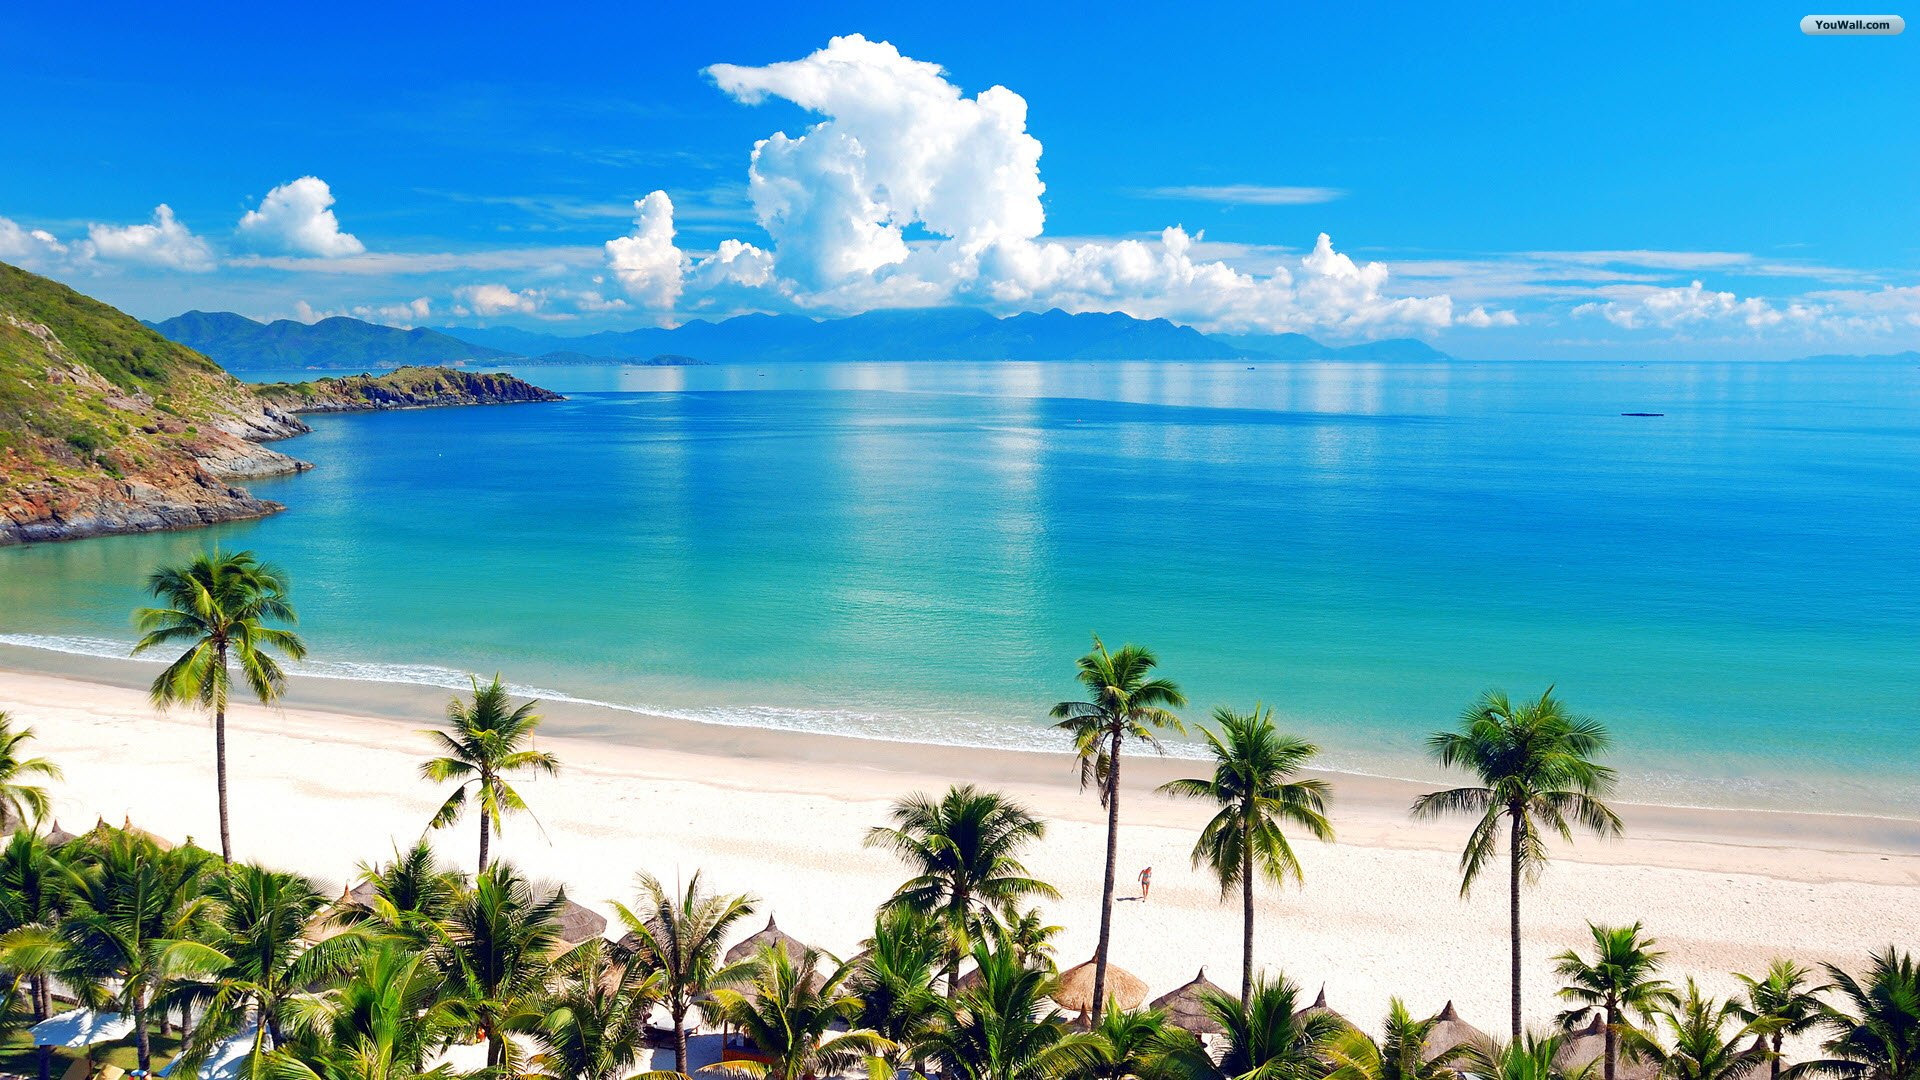 Beach Background Hd Desktop Wallpapers: Tropical Beach Wallpapers, Pictures, Images